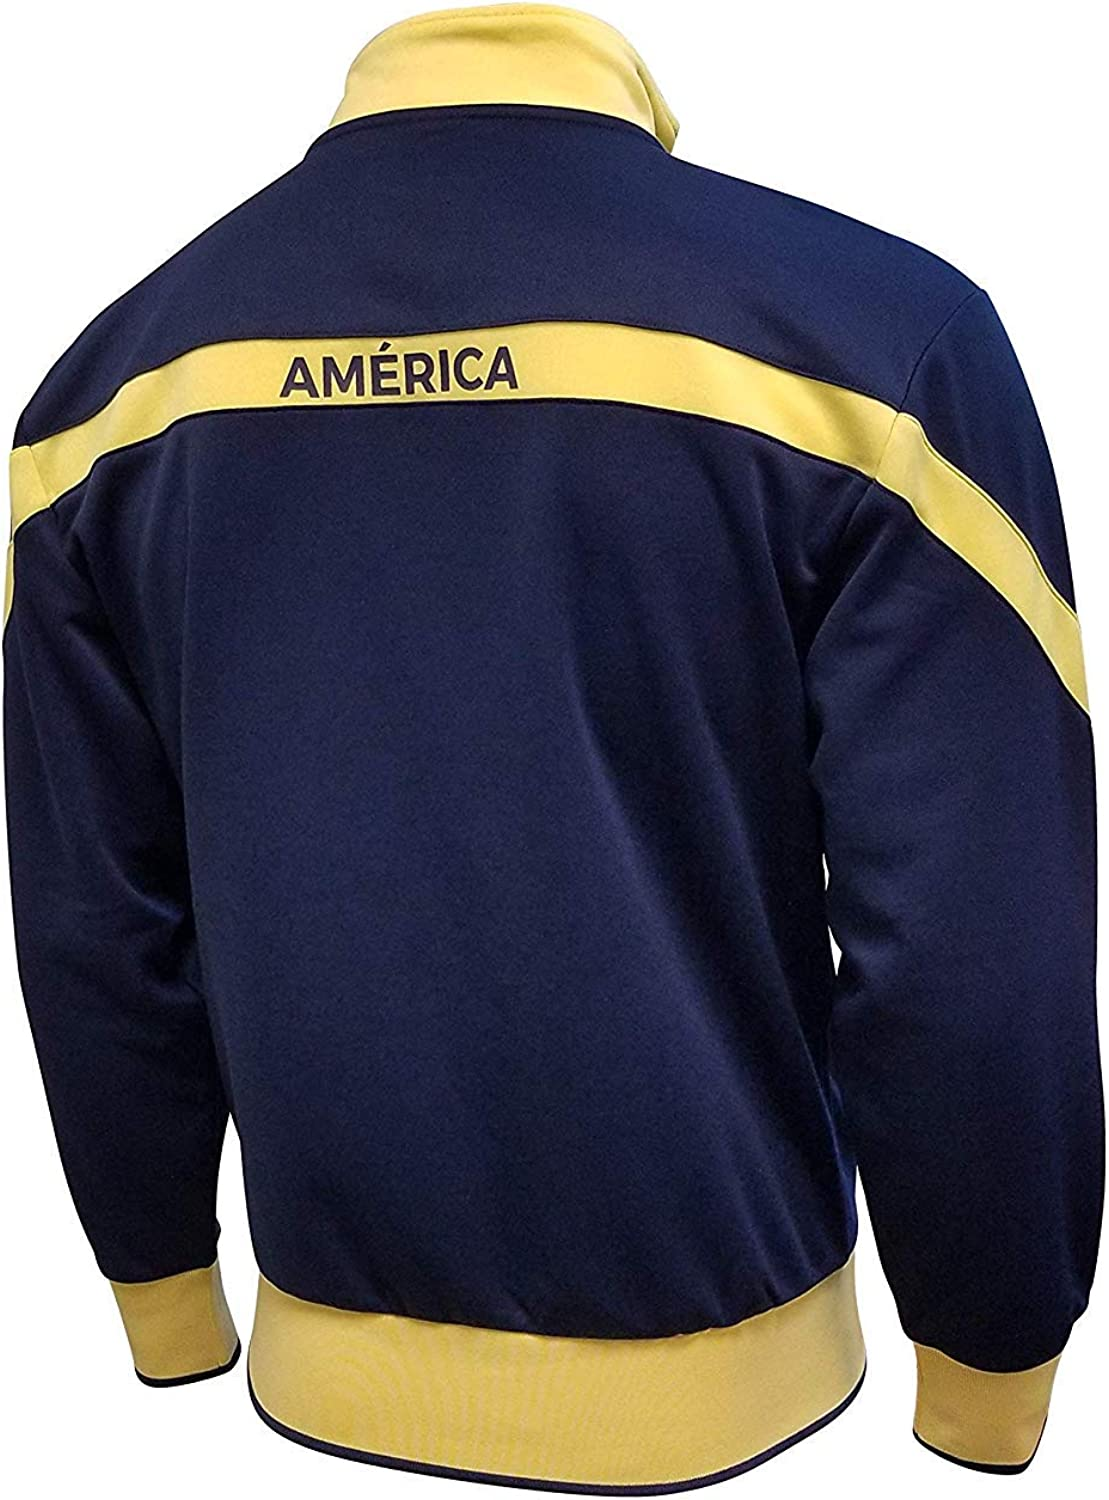 Club America Jacket and Beanie for Mens Adults Winter New Season Official Licensed Set AMER016